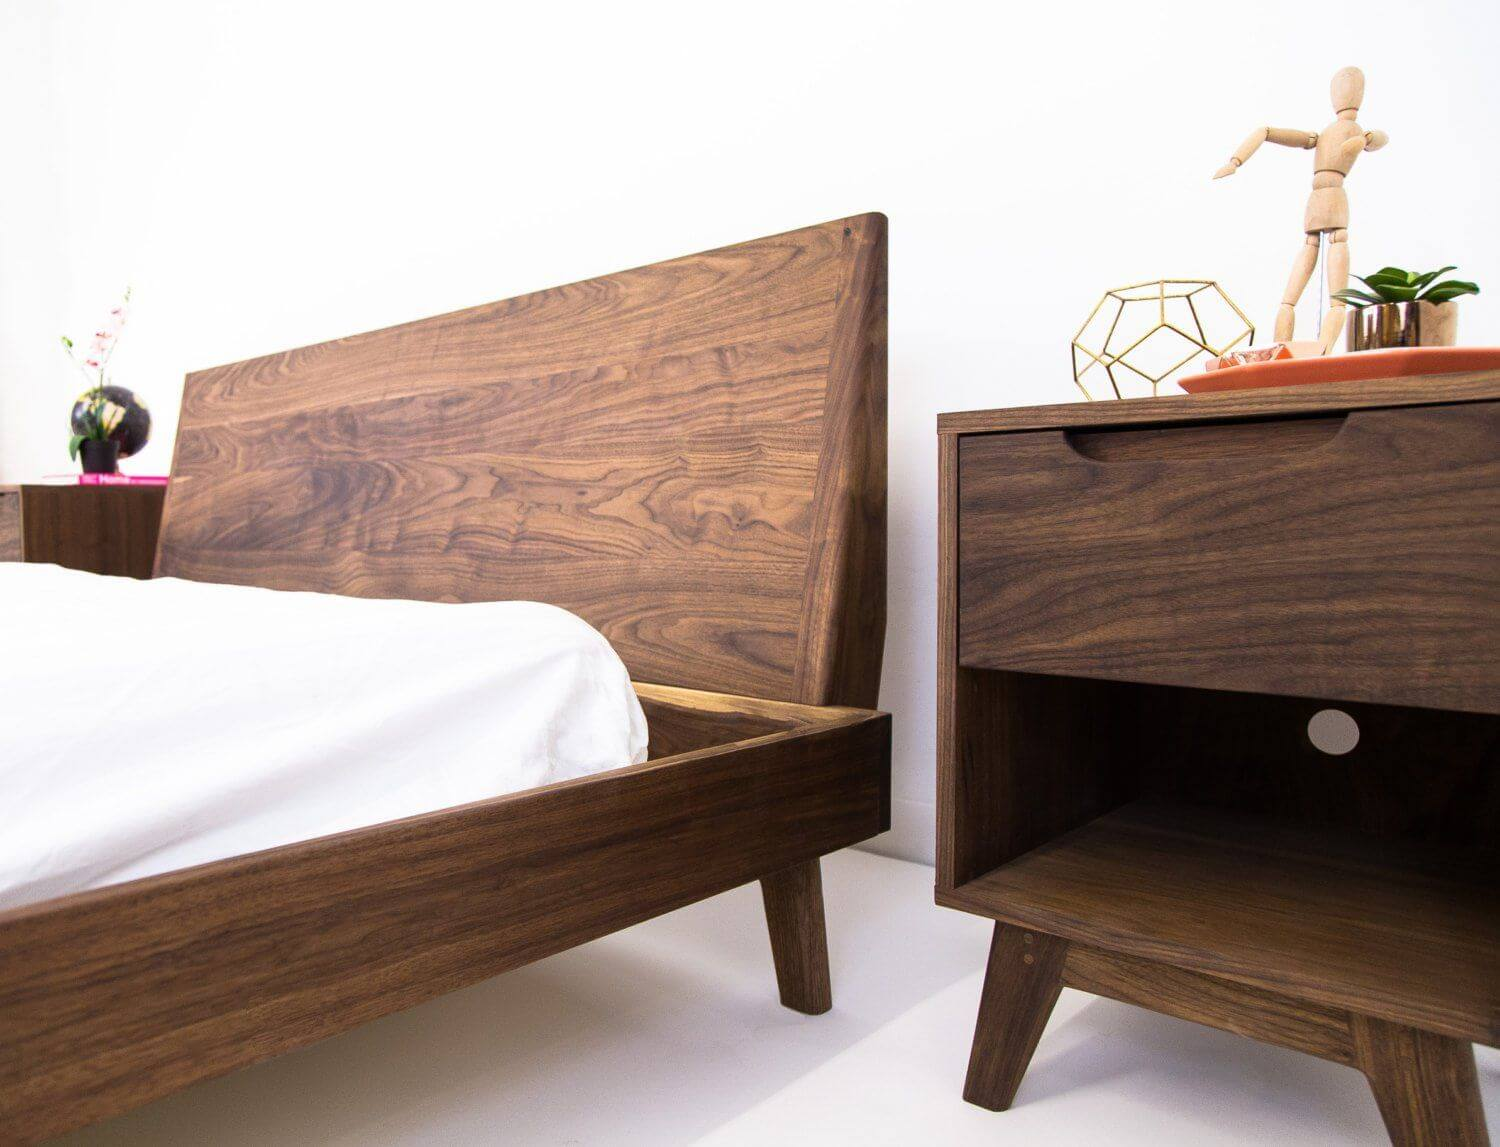 WOOD WALNUT BED FRAME IDEAS